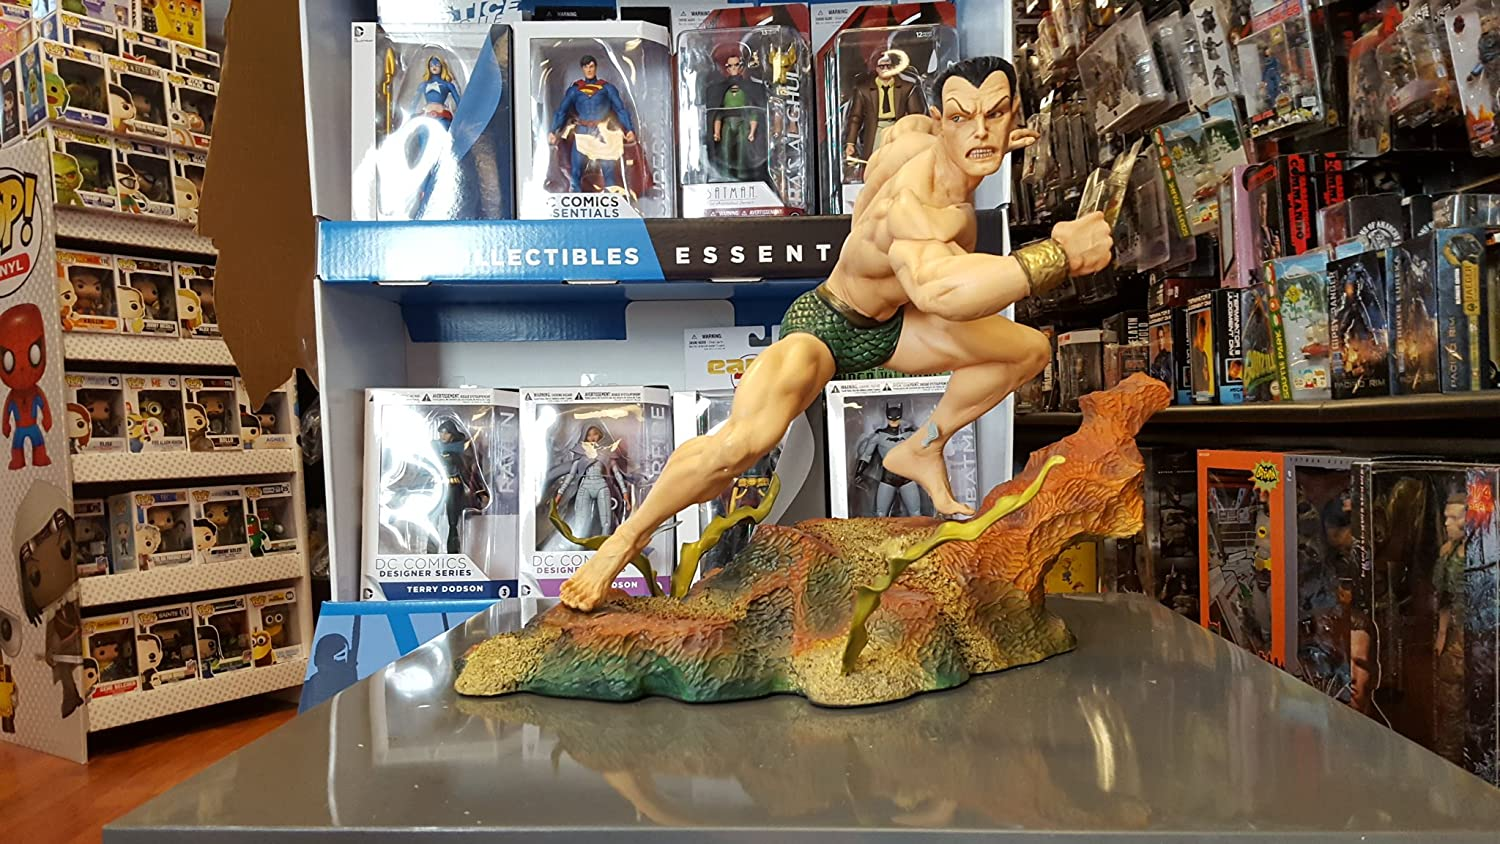 Sideshow Collectibles - Marvel statuette Prince Namor the Sub-Mariner Comiquette 45 cm by Sideshow